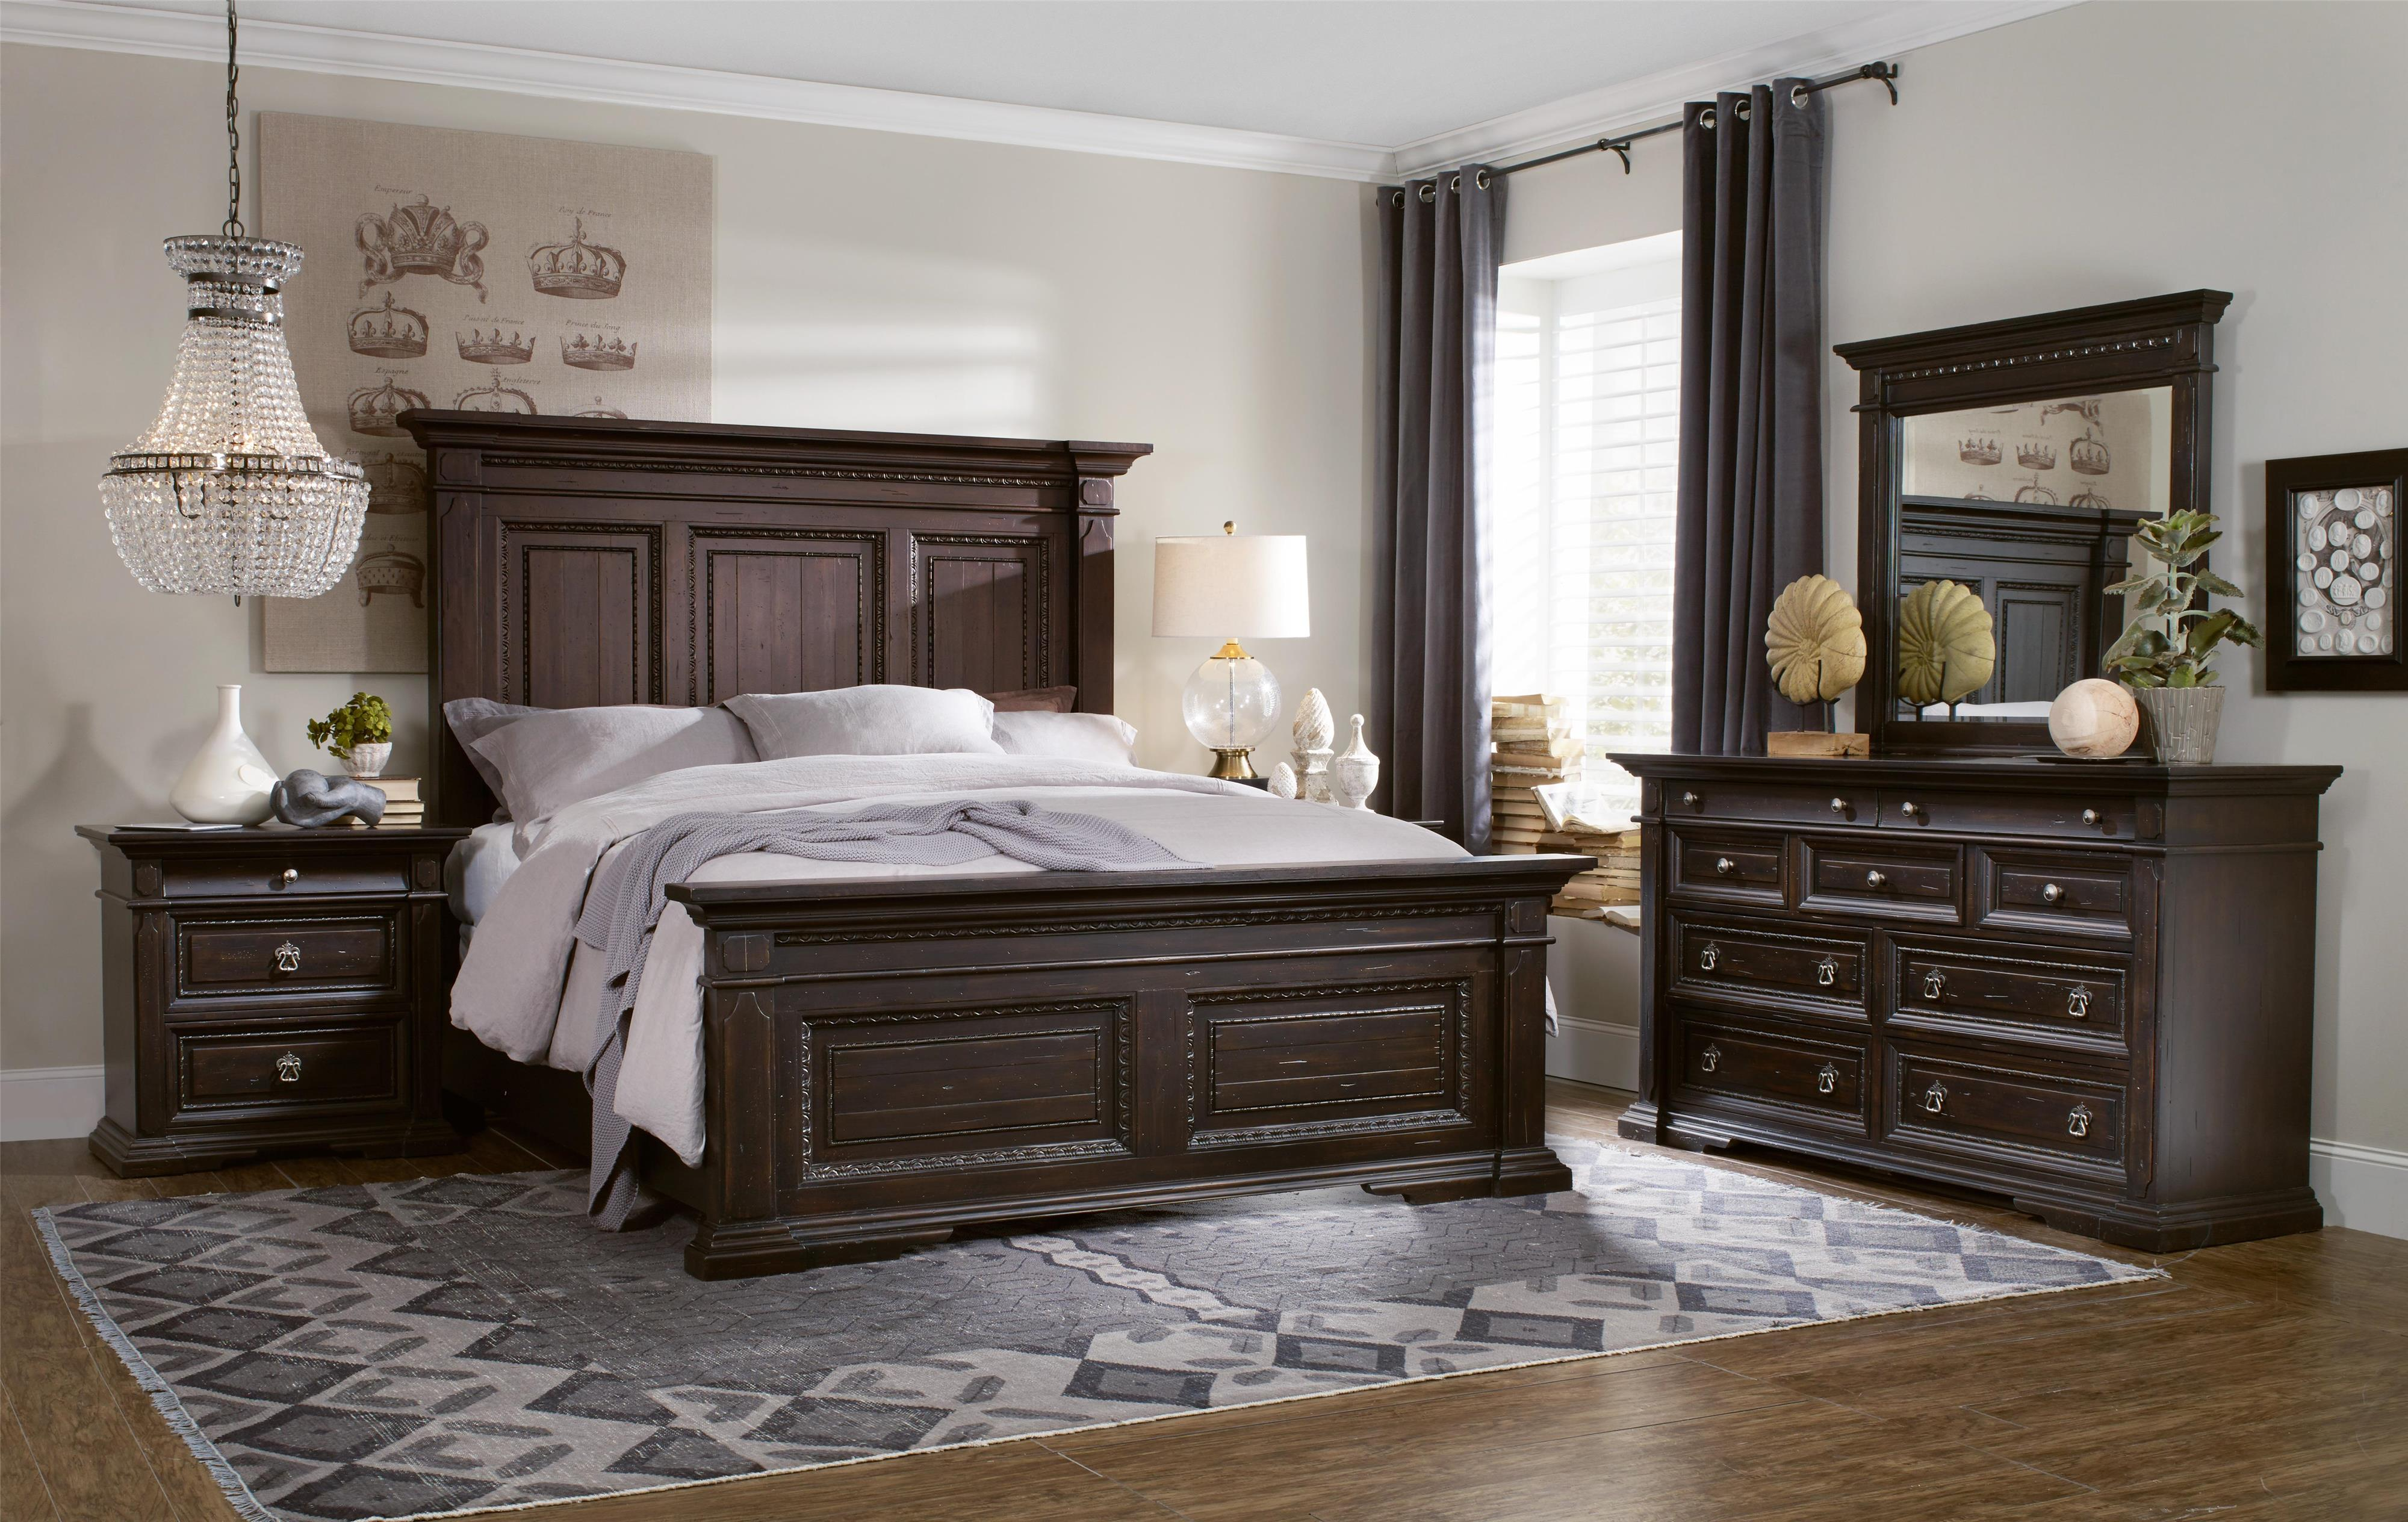 Hooker Furniture Treviso California King Bedroom Group - Item Number: 5374 CK Bedroom Group 2